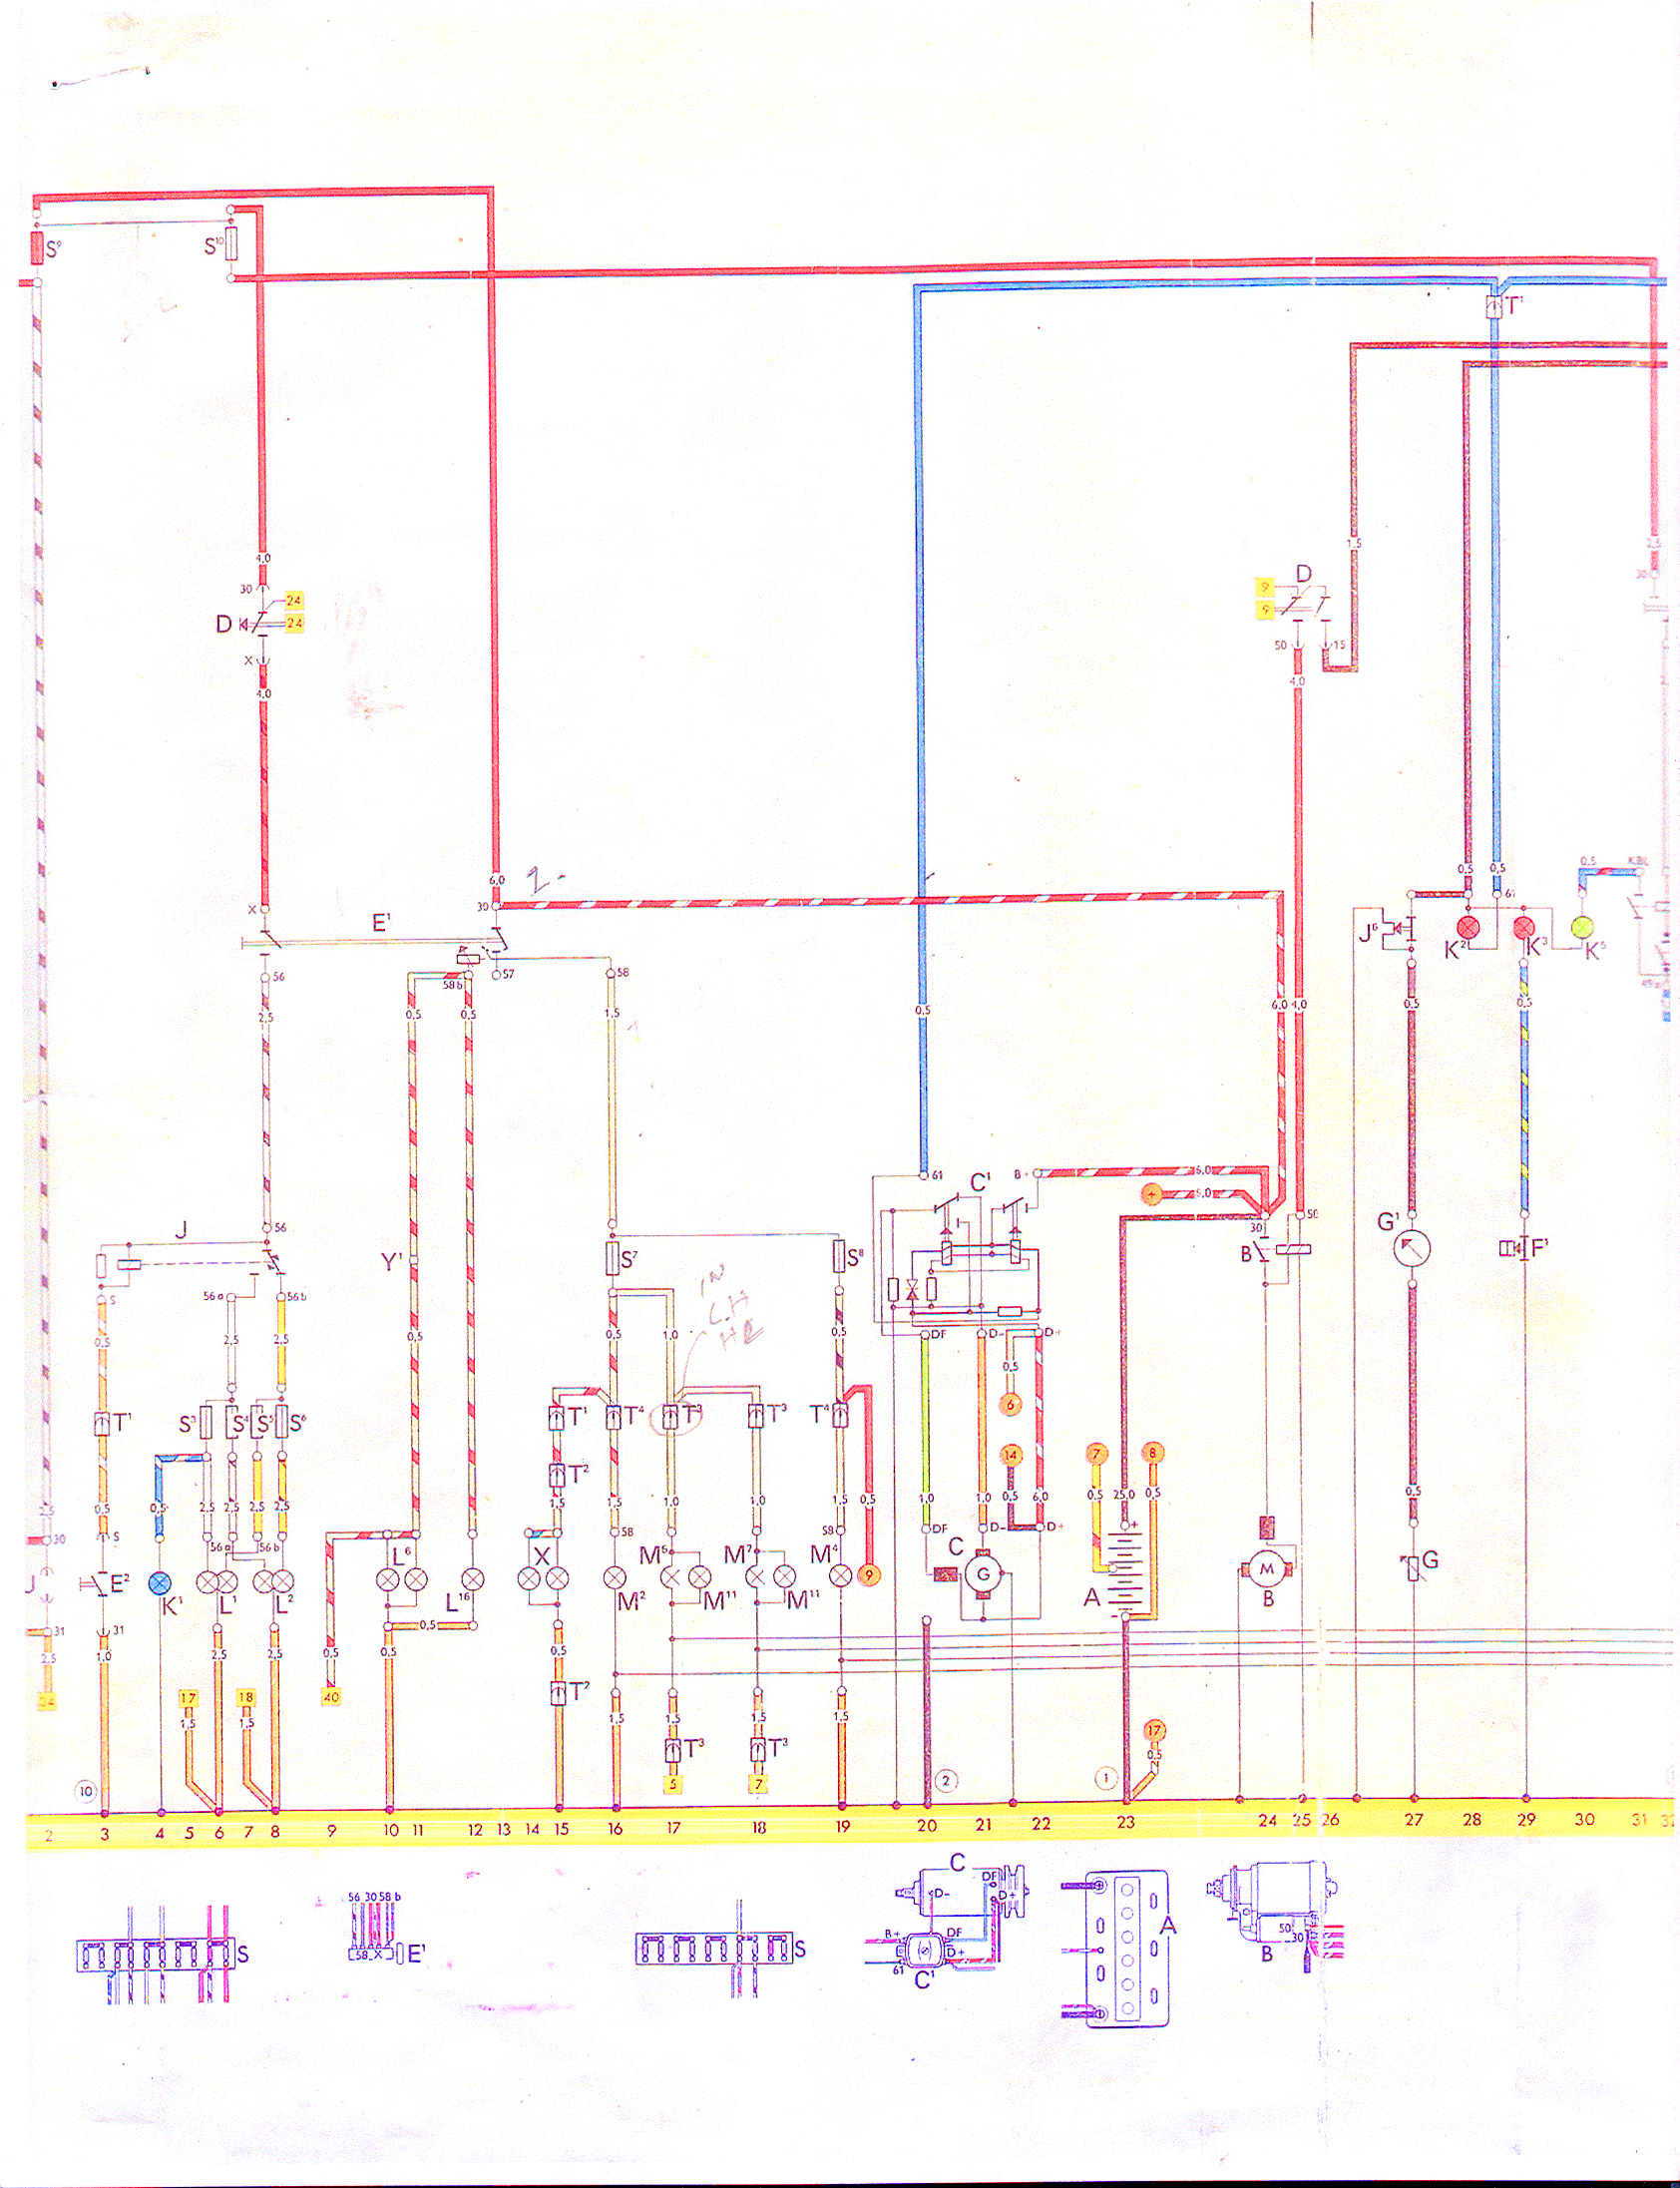 small resolution of wiring vw thing type 181 restoration vw engine wiring diagram 1973 vw thing wiring diagram